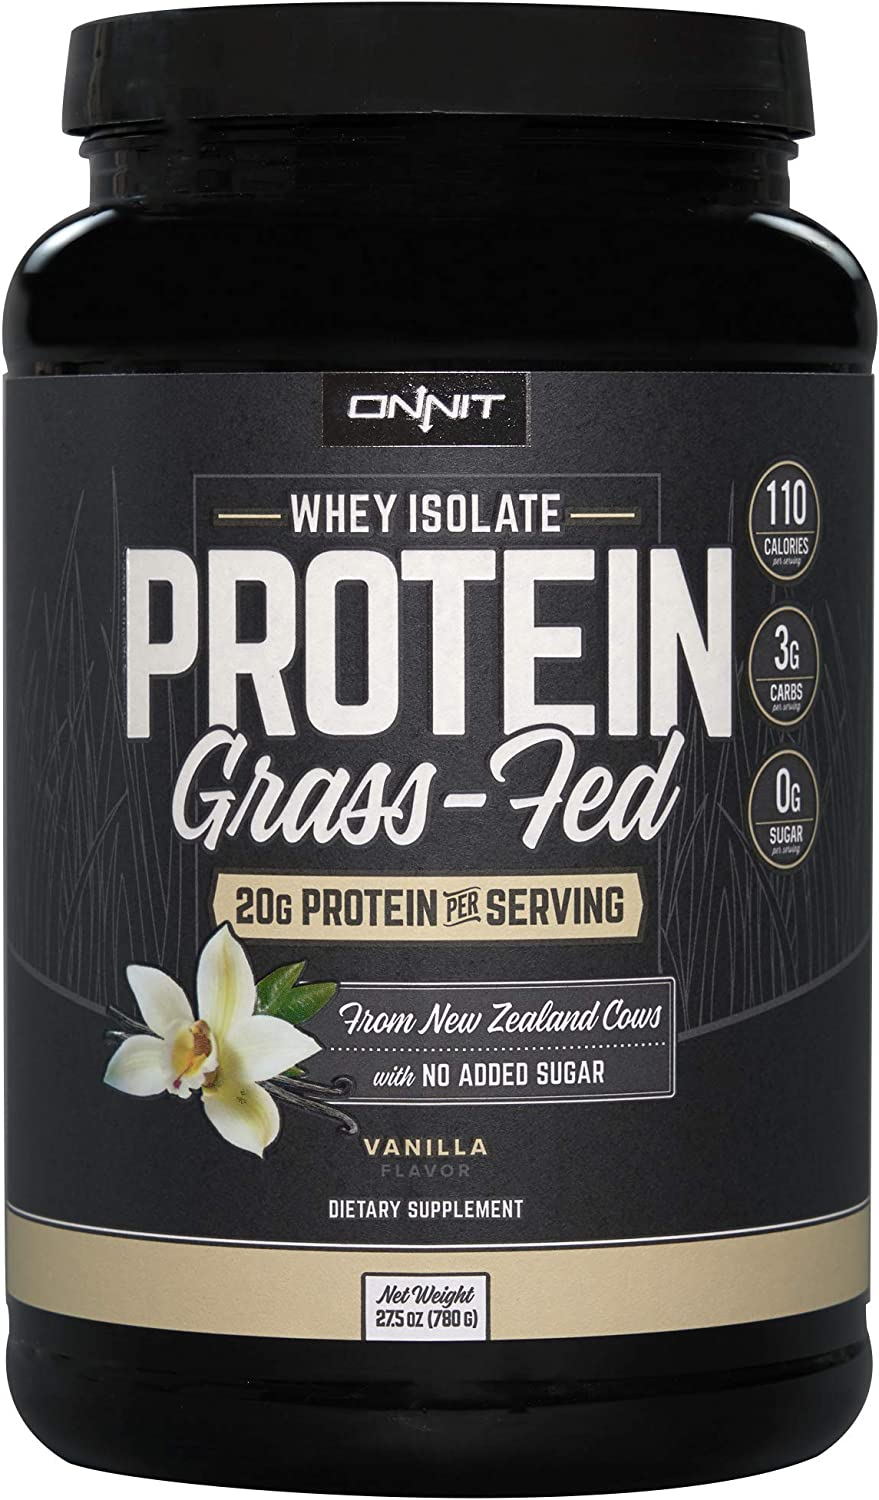 Onnit Grass Fed Whey Topics on TV Isolate 30 Vanilla lowest price - Protein Servings